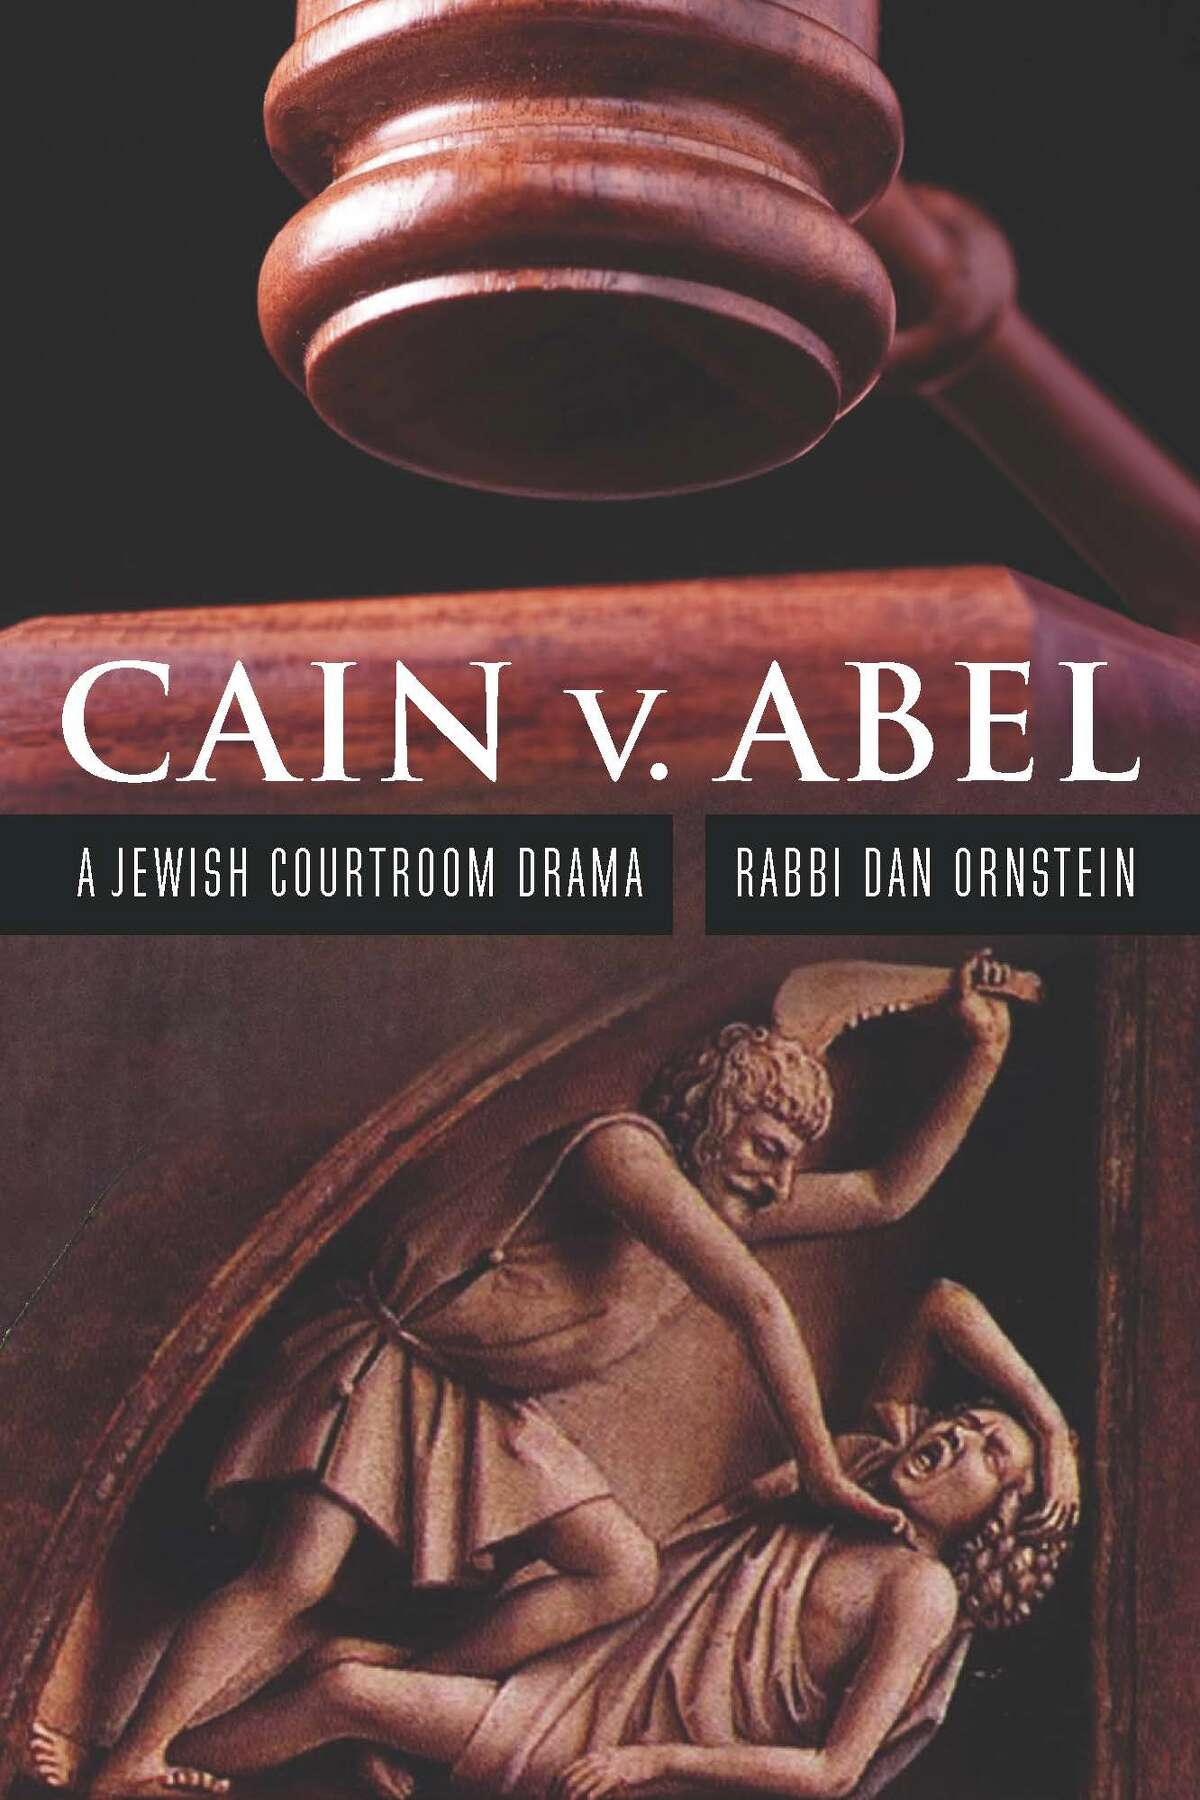 Rabbi Dan Ornstein, co-rabbi at Congregation Ohav Shalom, has written a courtroom drama based on the Biblical tale of Cain and Abel.